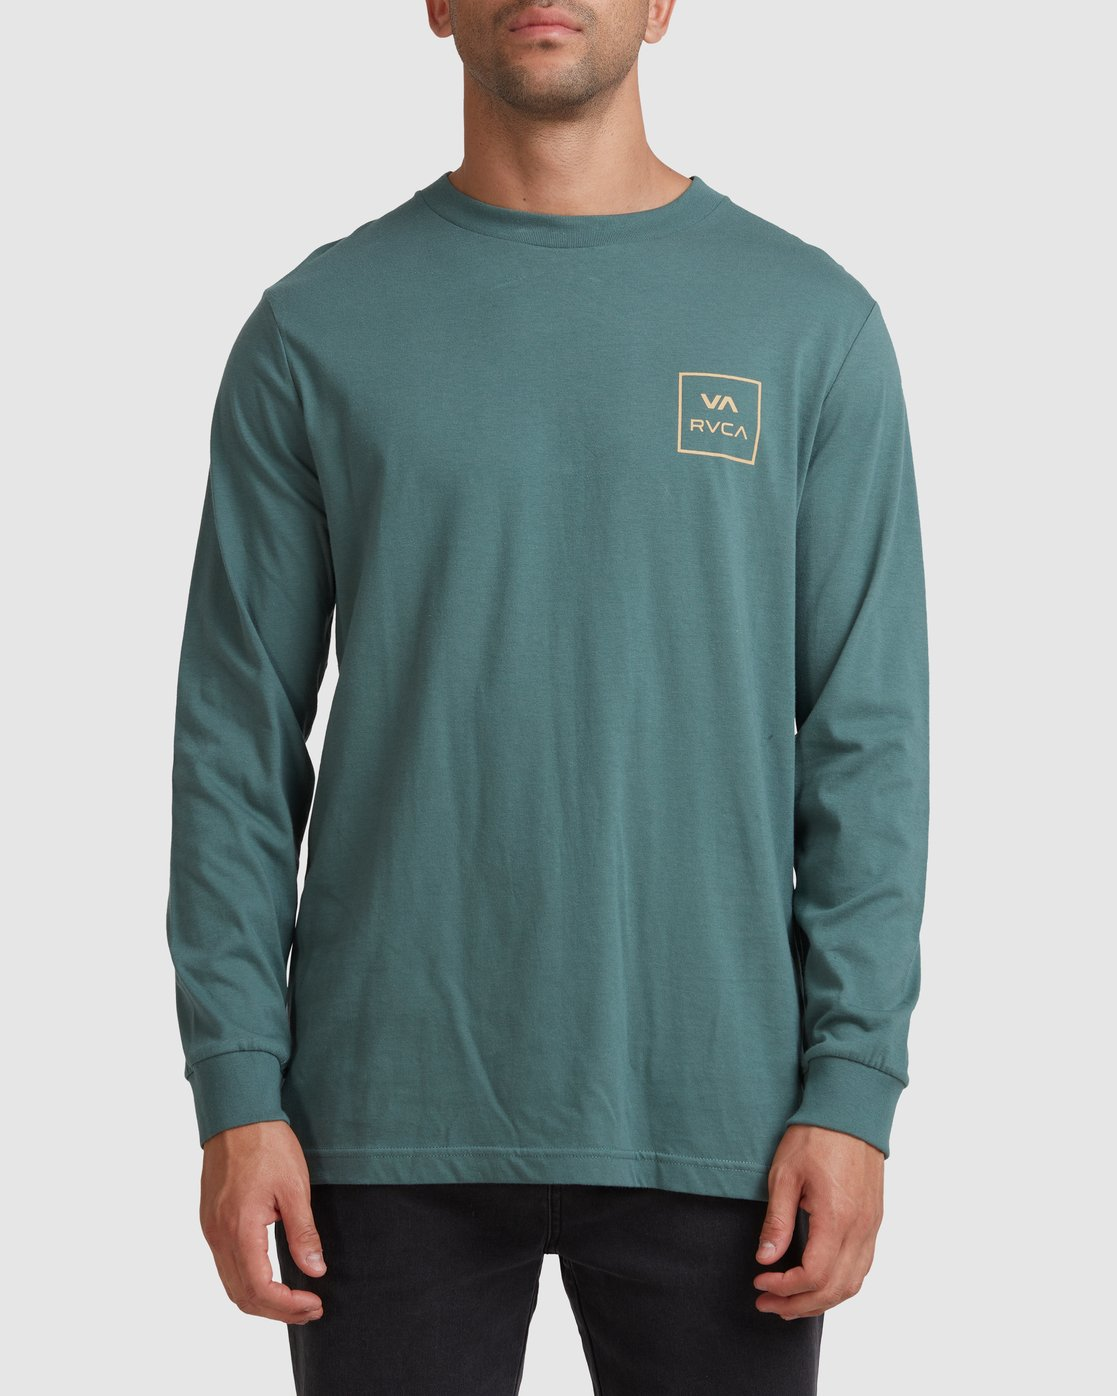 0 VA All The Ways Long Sleeve Tee Green R107091 RVCA